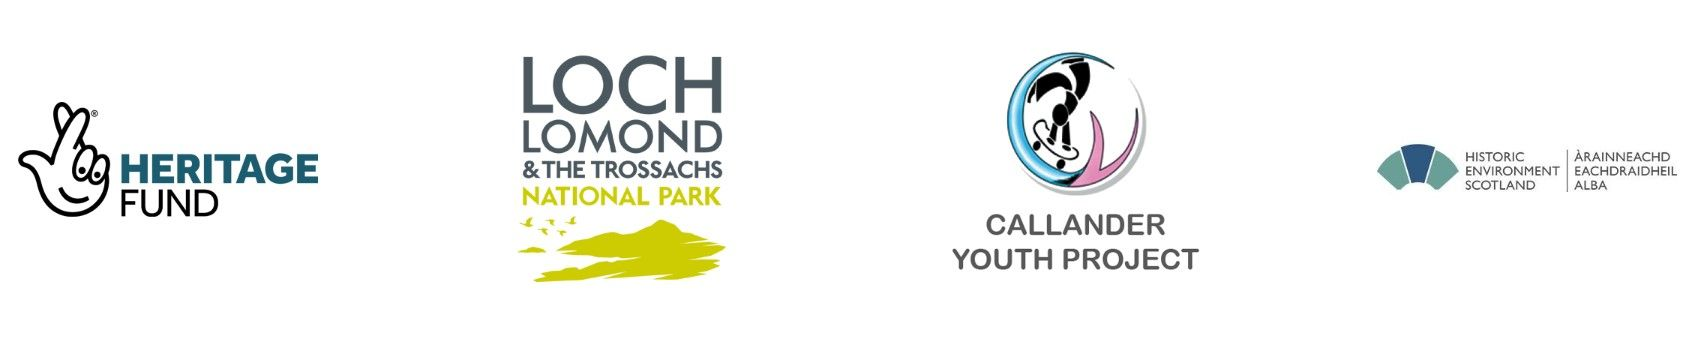 heritage-skills-logo-partners-heritage-fund-loch-lomond-trossachs-national-park-callander-youth-project-historic-environment-scotland